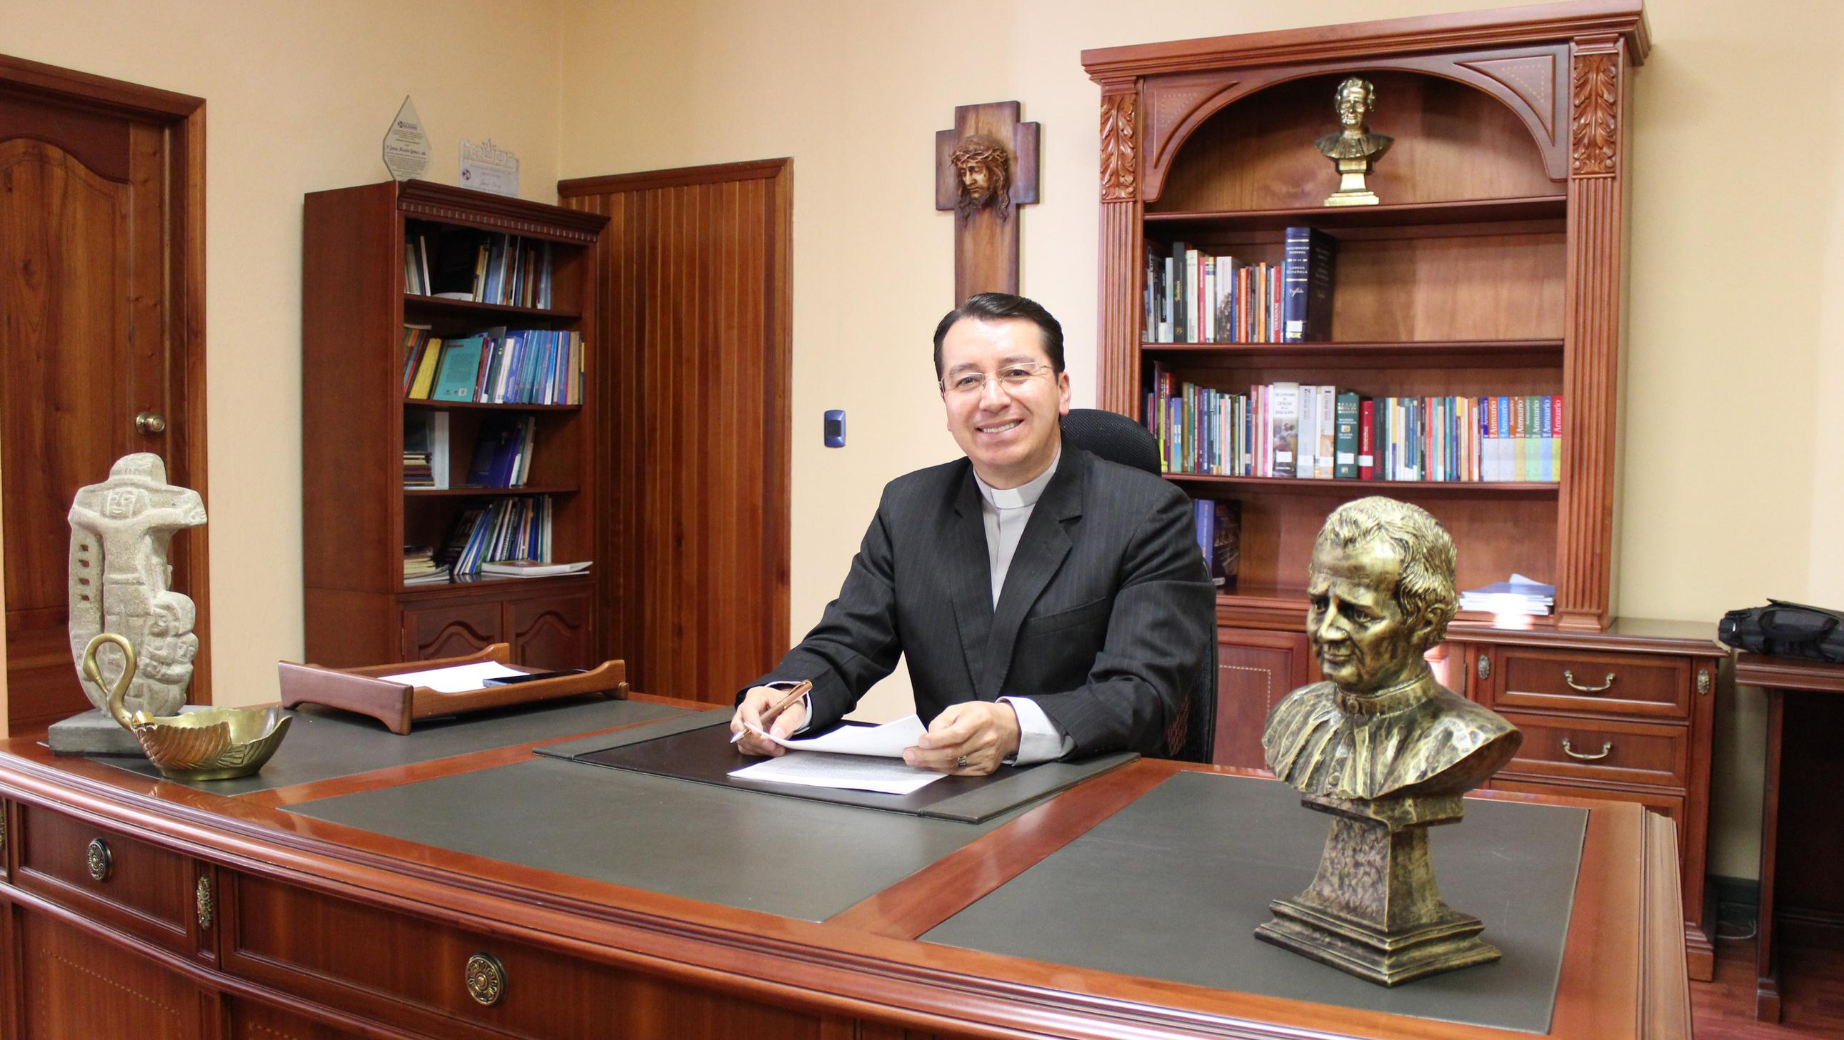 Father Juan Cárdenas Tapia, sdb. is the new Rector of the Salesian Polytechnic University of Ecuador